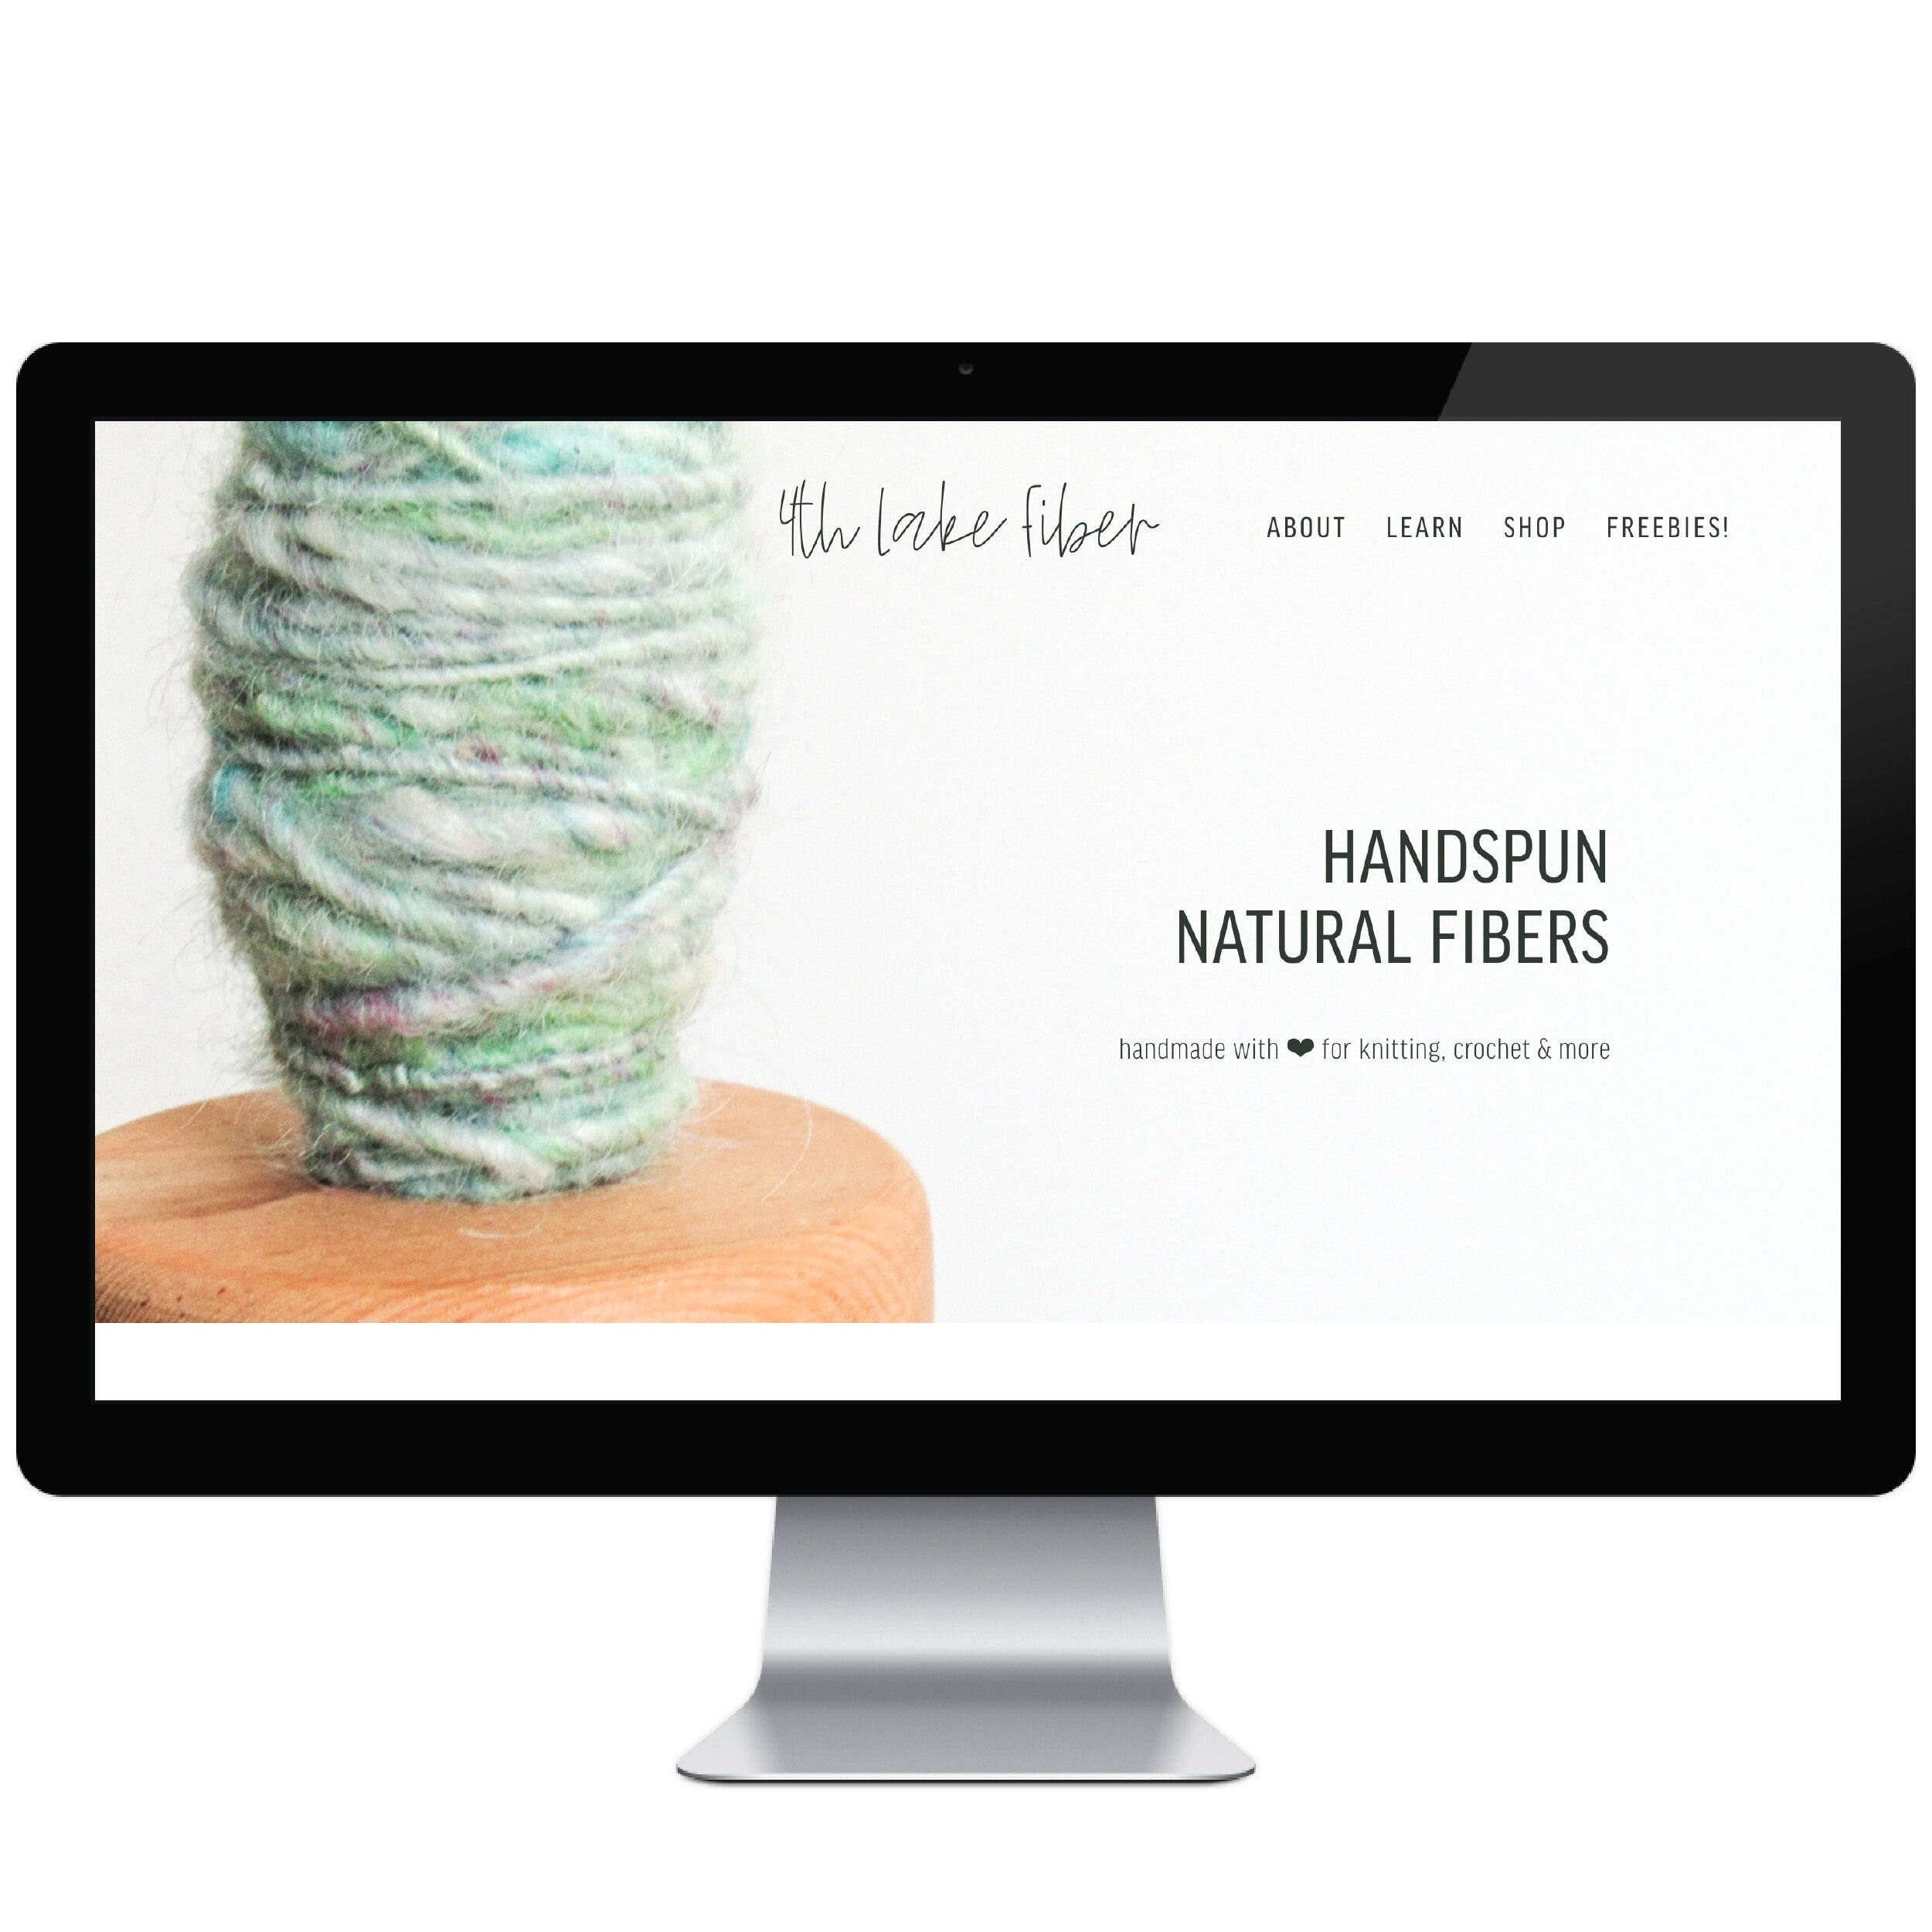 4th Lake Fiber // Five Design Co. custom Squarespace website design portfolio